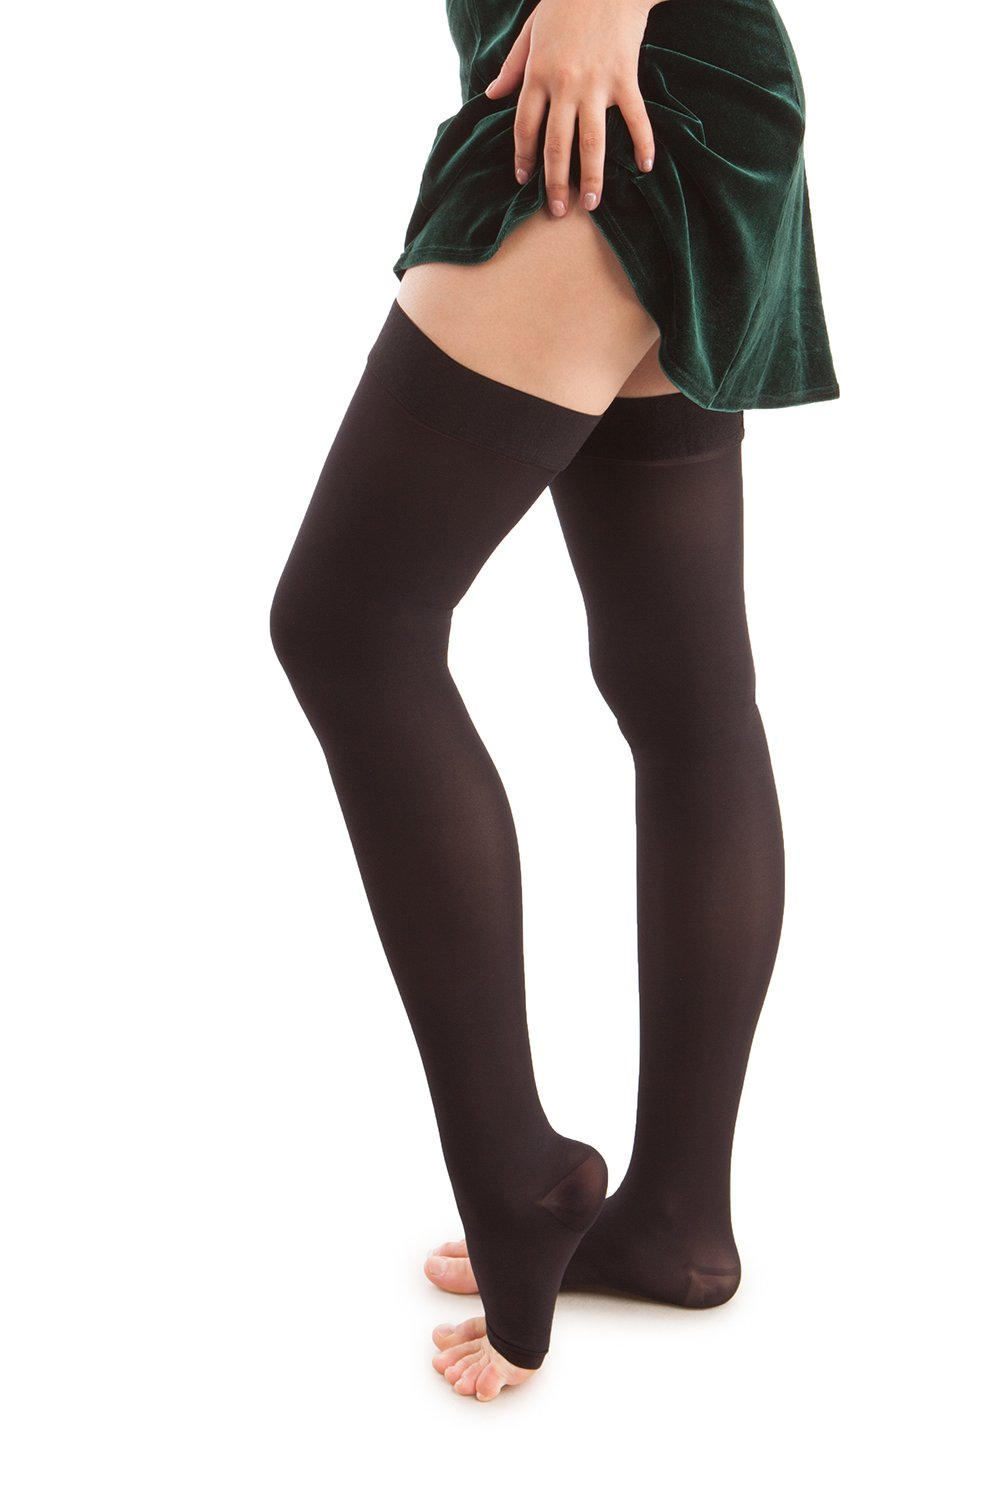 Microfiber Open Toe Thigh Highs - Strong Compression - 25 to 35 mmHG